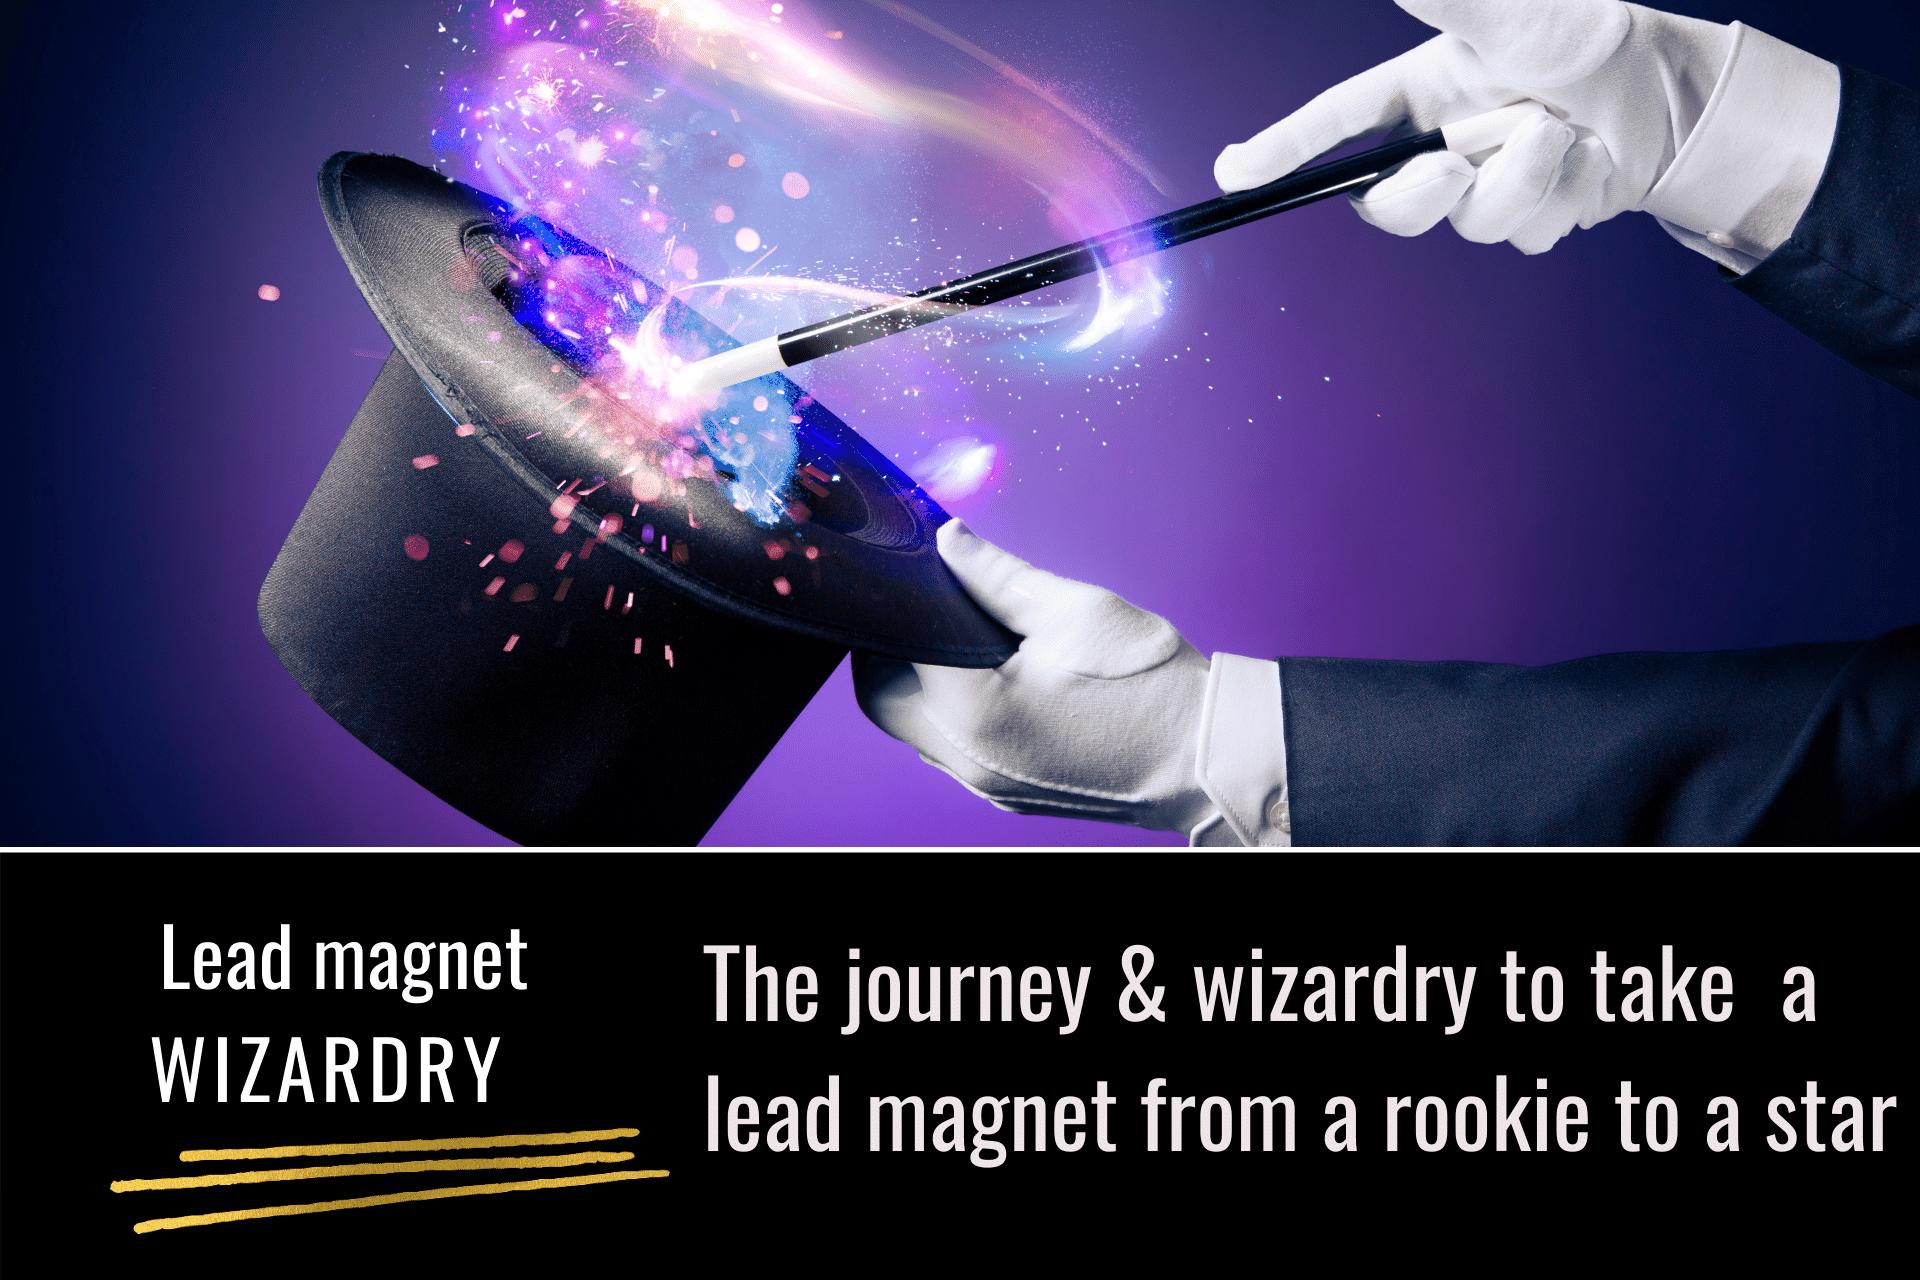 lead-magnet-wizardry-1920-1280-cover